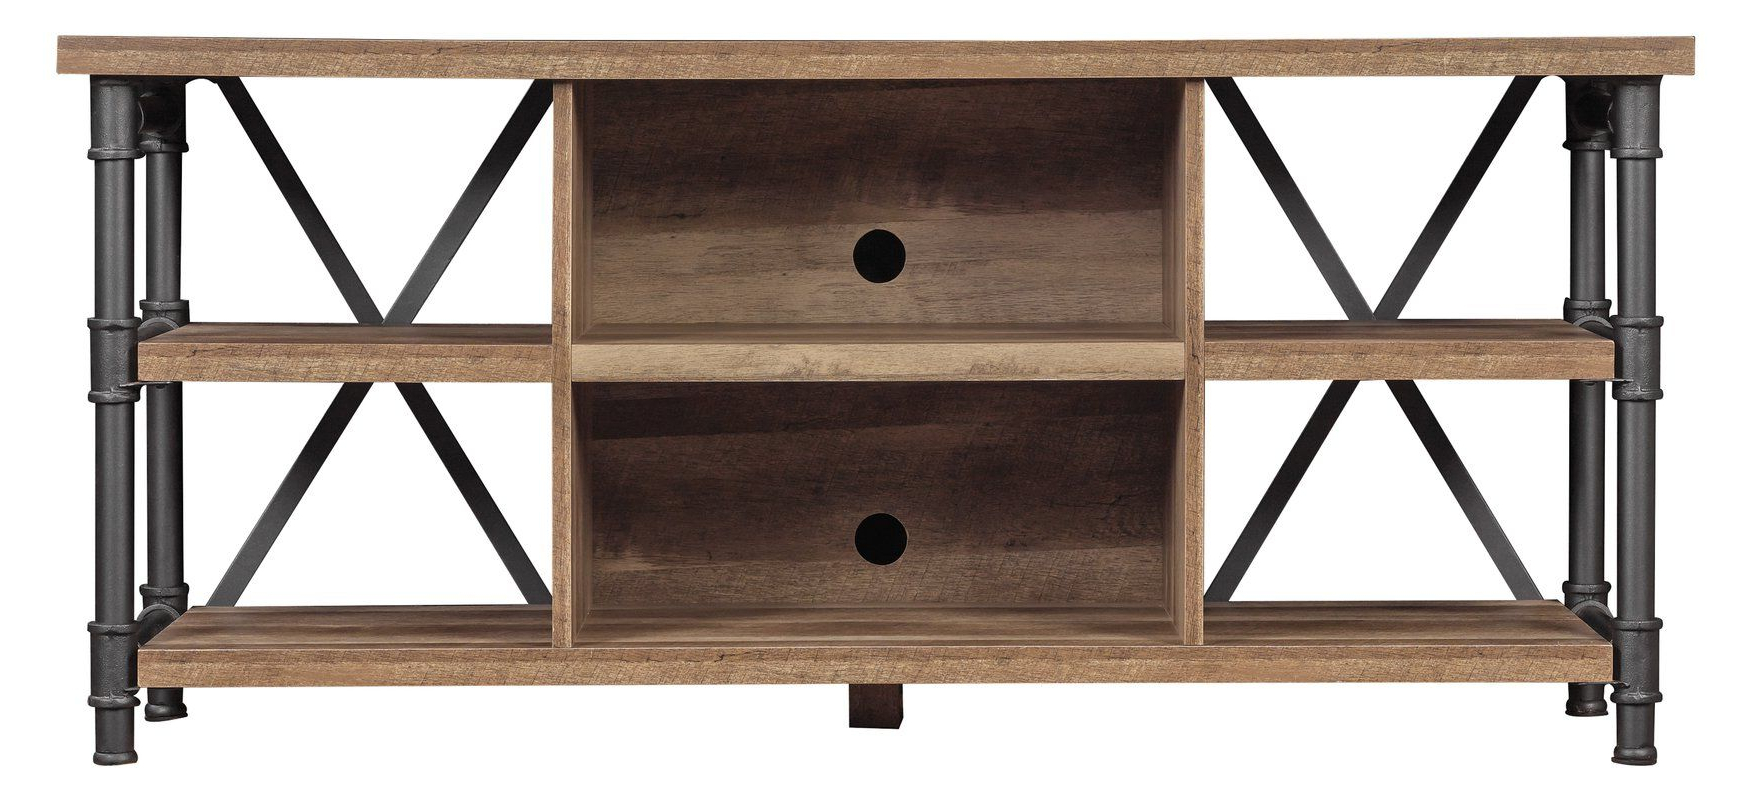 Tv Board Pinterest 20 The Best Casey Grey 54 Inch Tv Stands